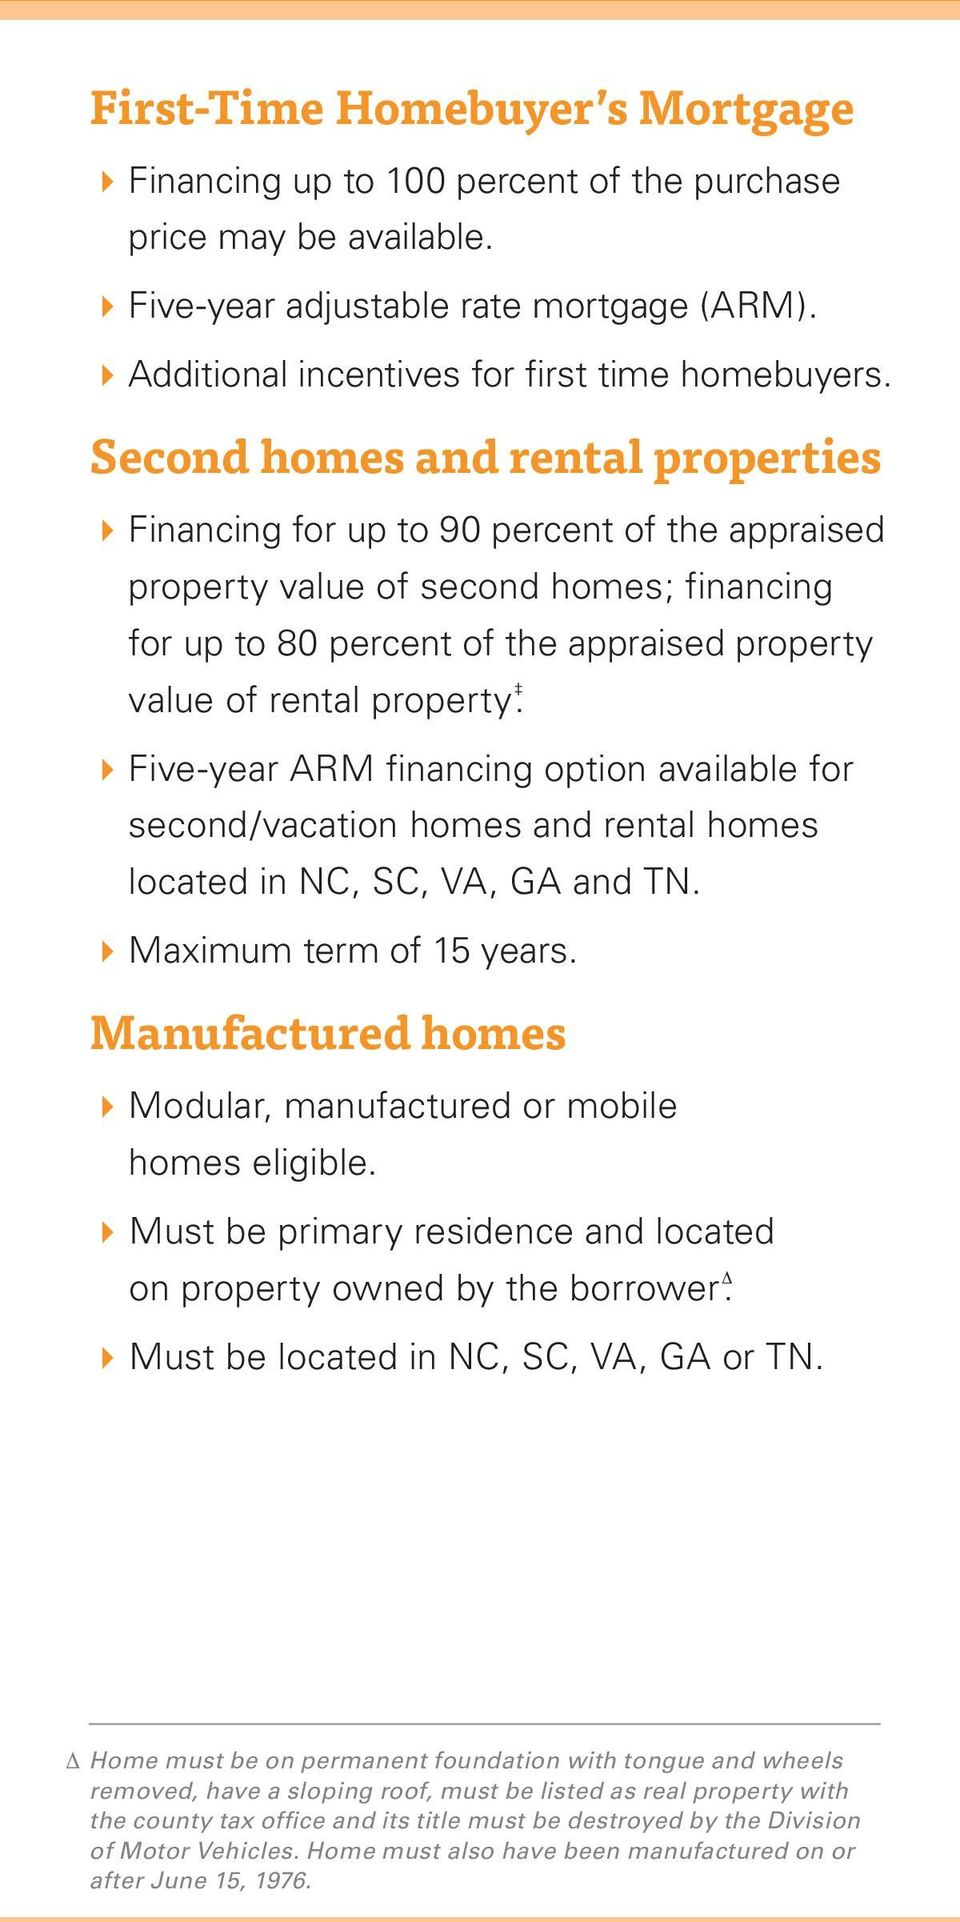 4Five-year ARM financing option available for second/vacation homes and rental homes located in NC, SC, VA, GA and TN. 4Maximum term of 15 years.